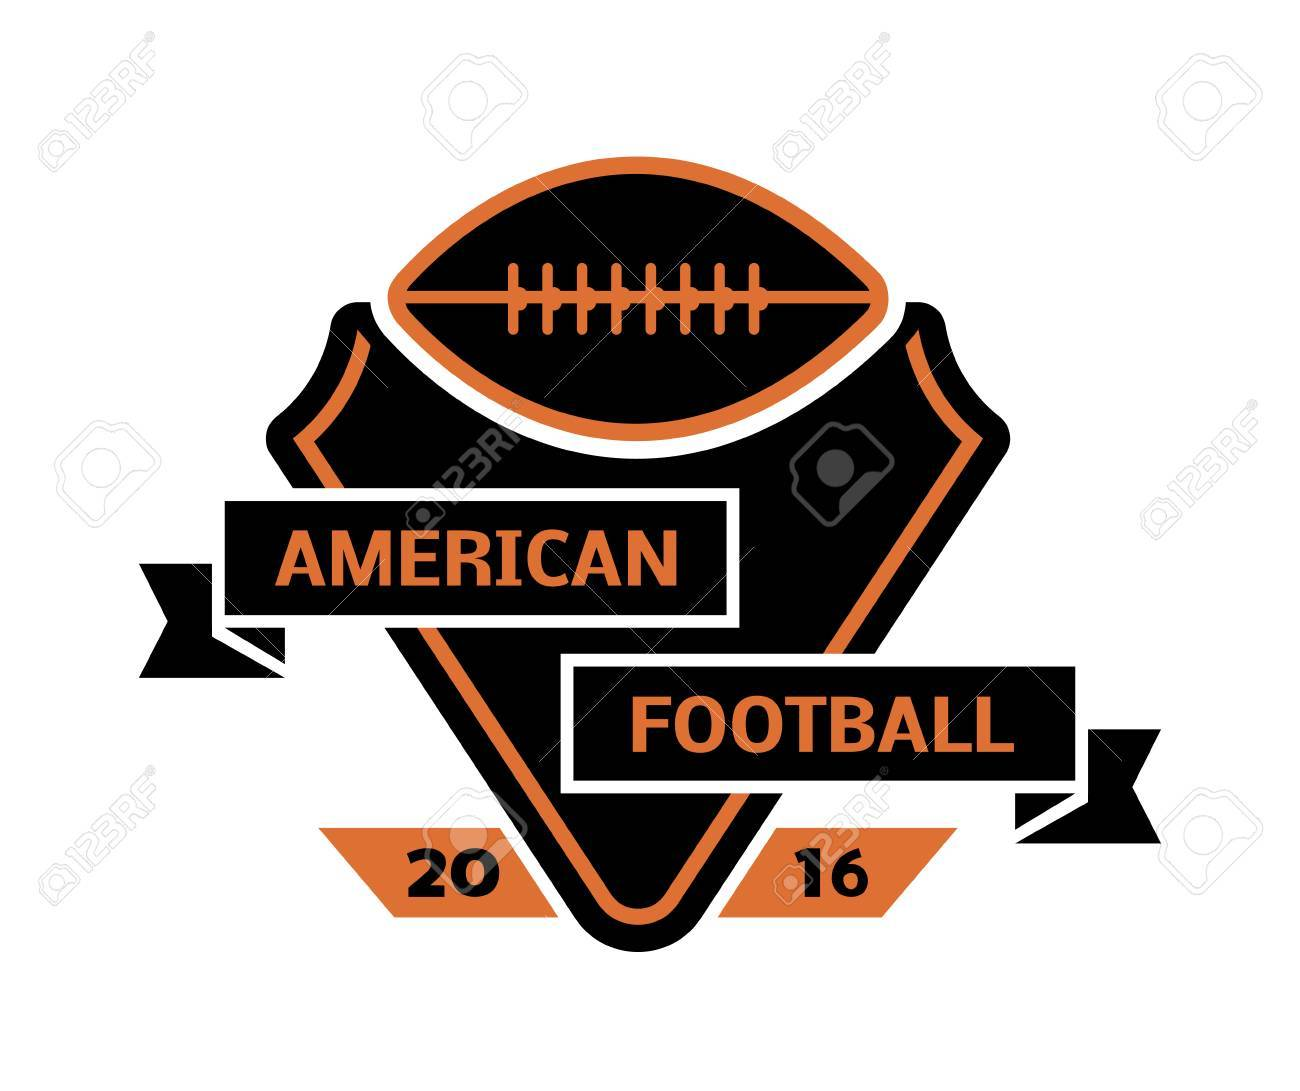 Template for american football sport team with sport sign and template for american football sport team with sport sign and symbols tournament competition graphic champion biocorpaavc Choice Image